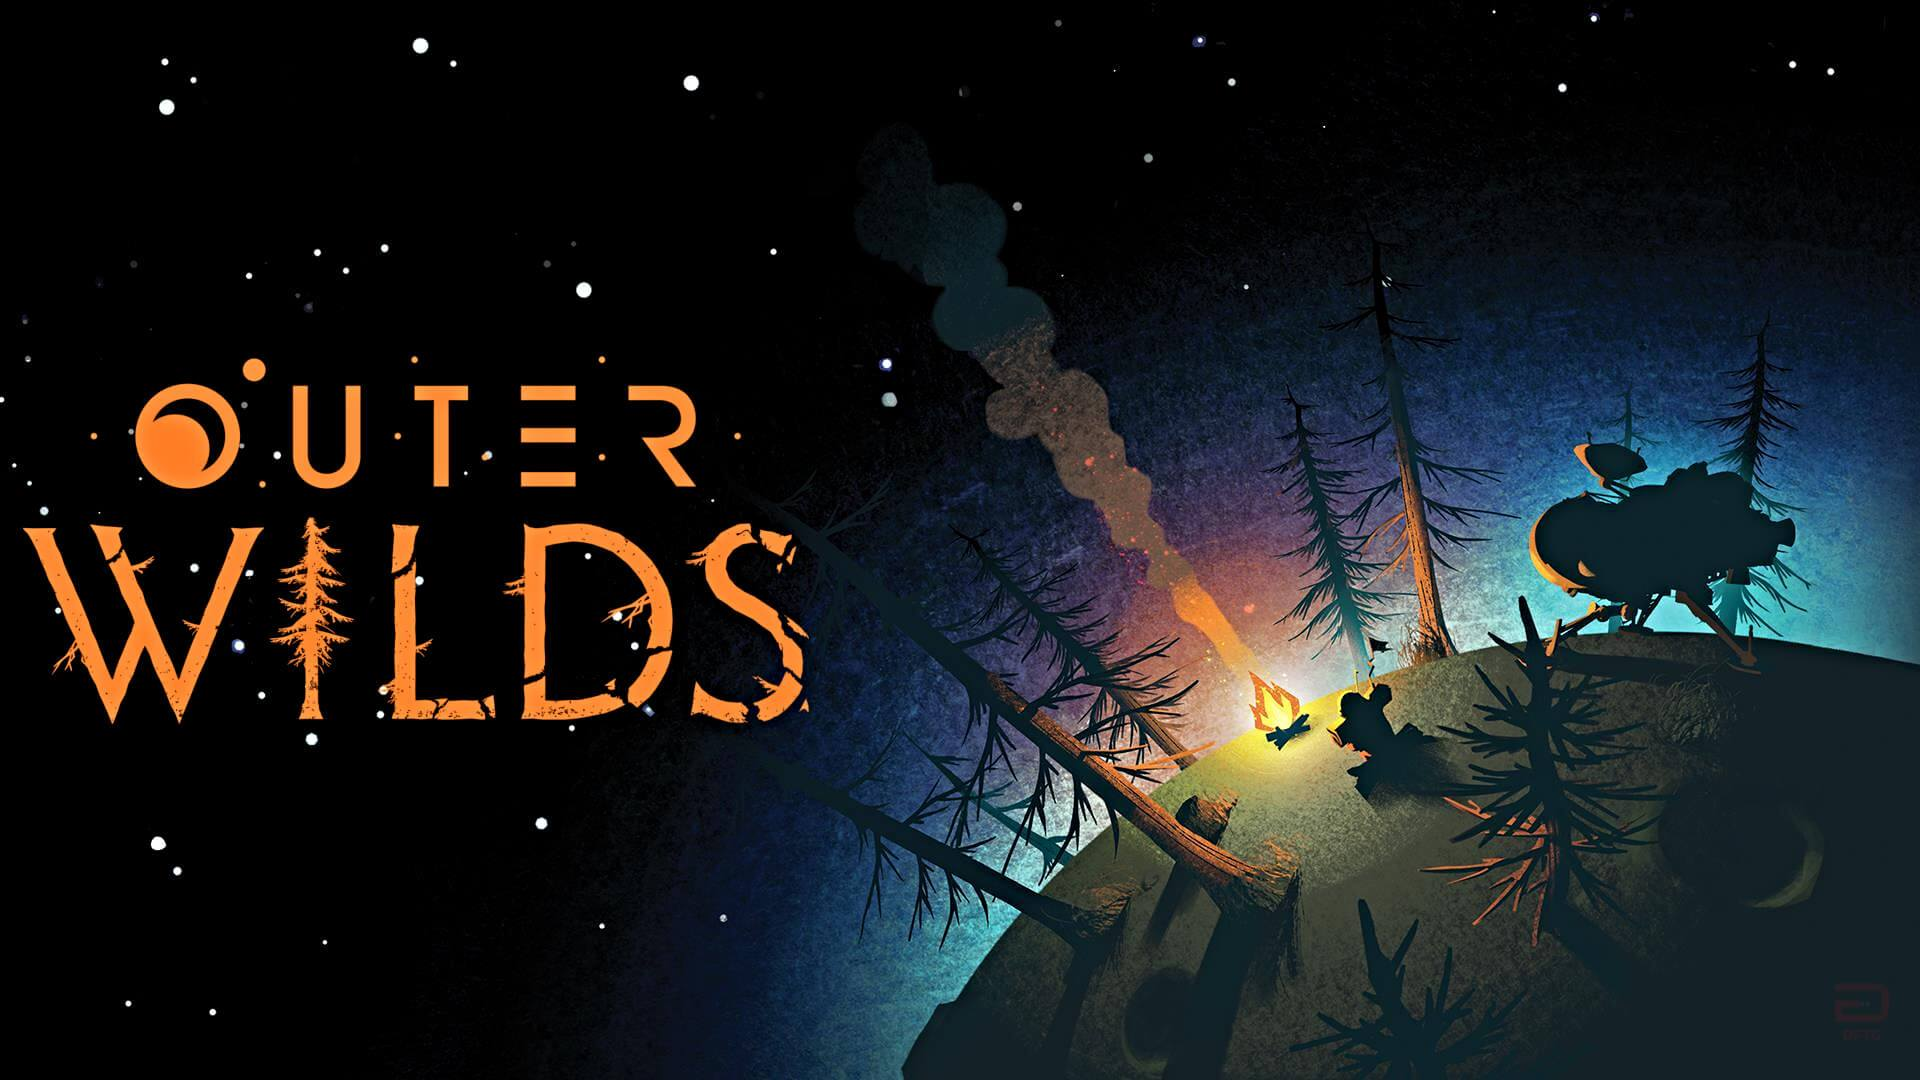 Open world space game 'Outer Wilds' To be Released soon on PS4 in October: Details inside